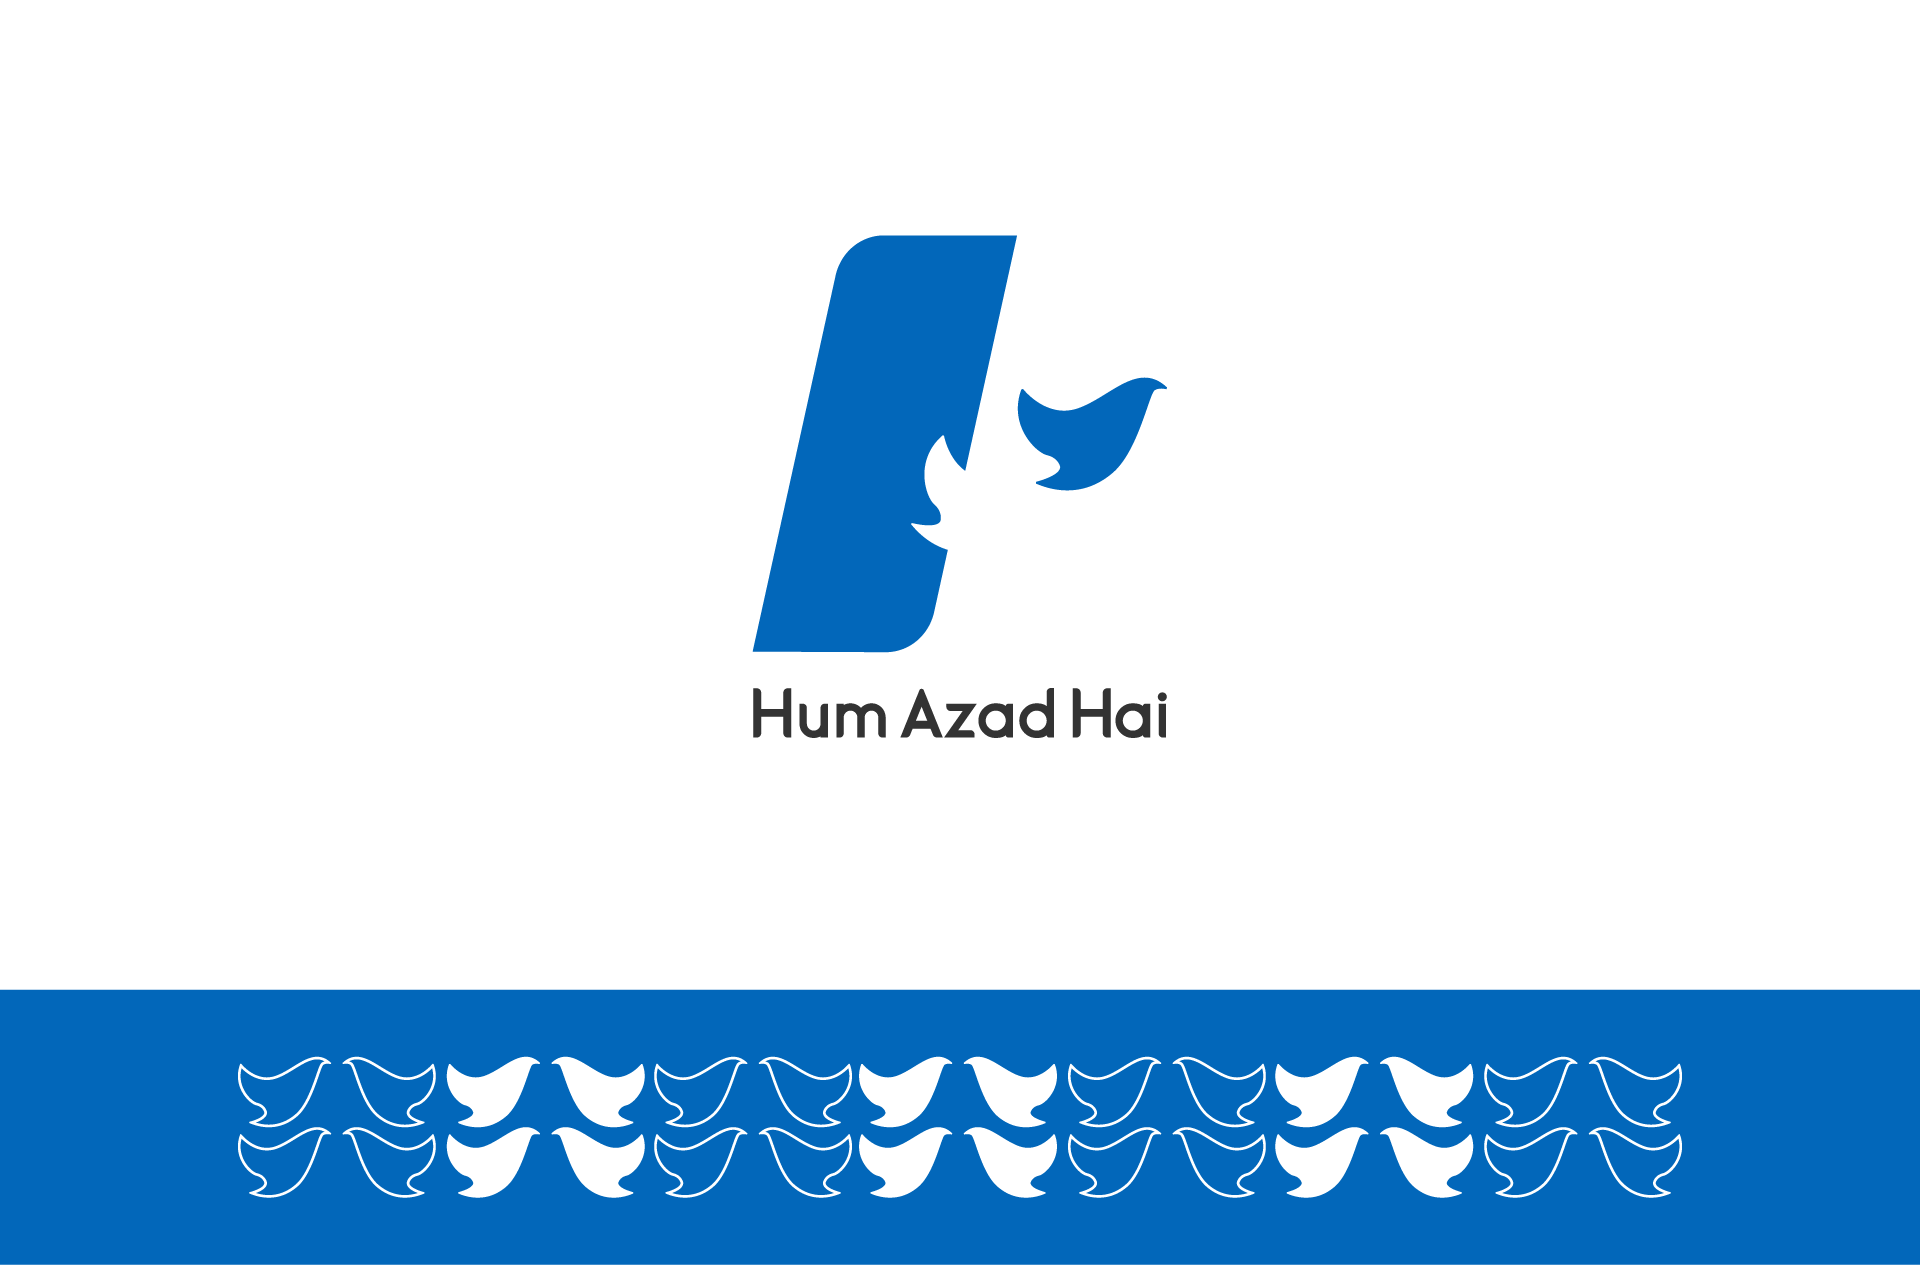 The logo of Hum Azad Hai with a pattern created with the bird in its logo